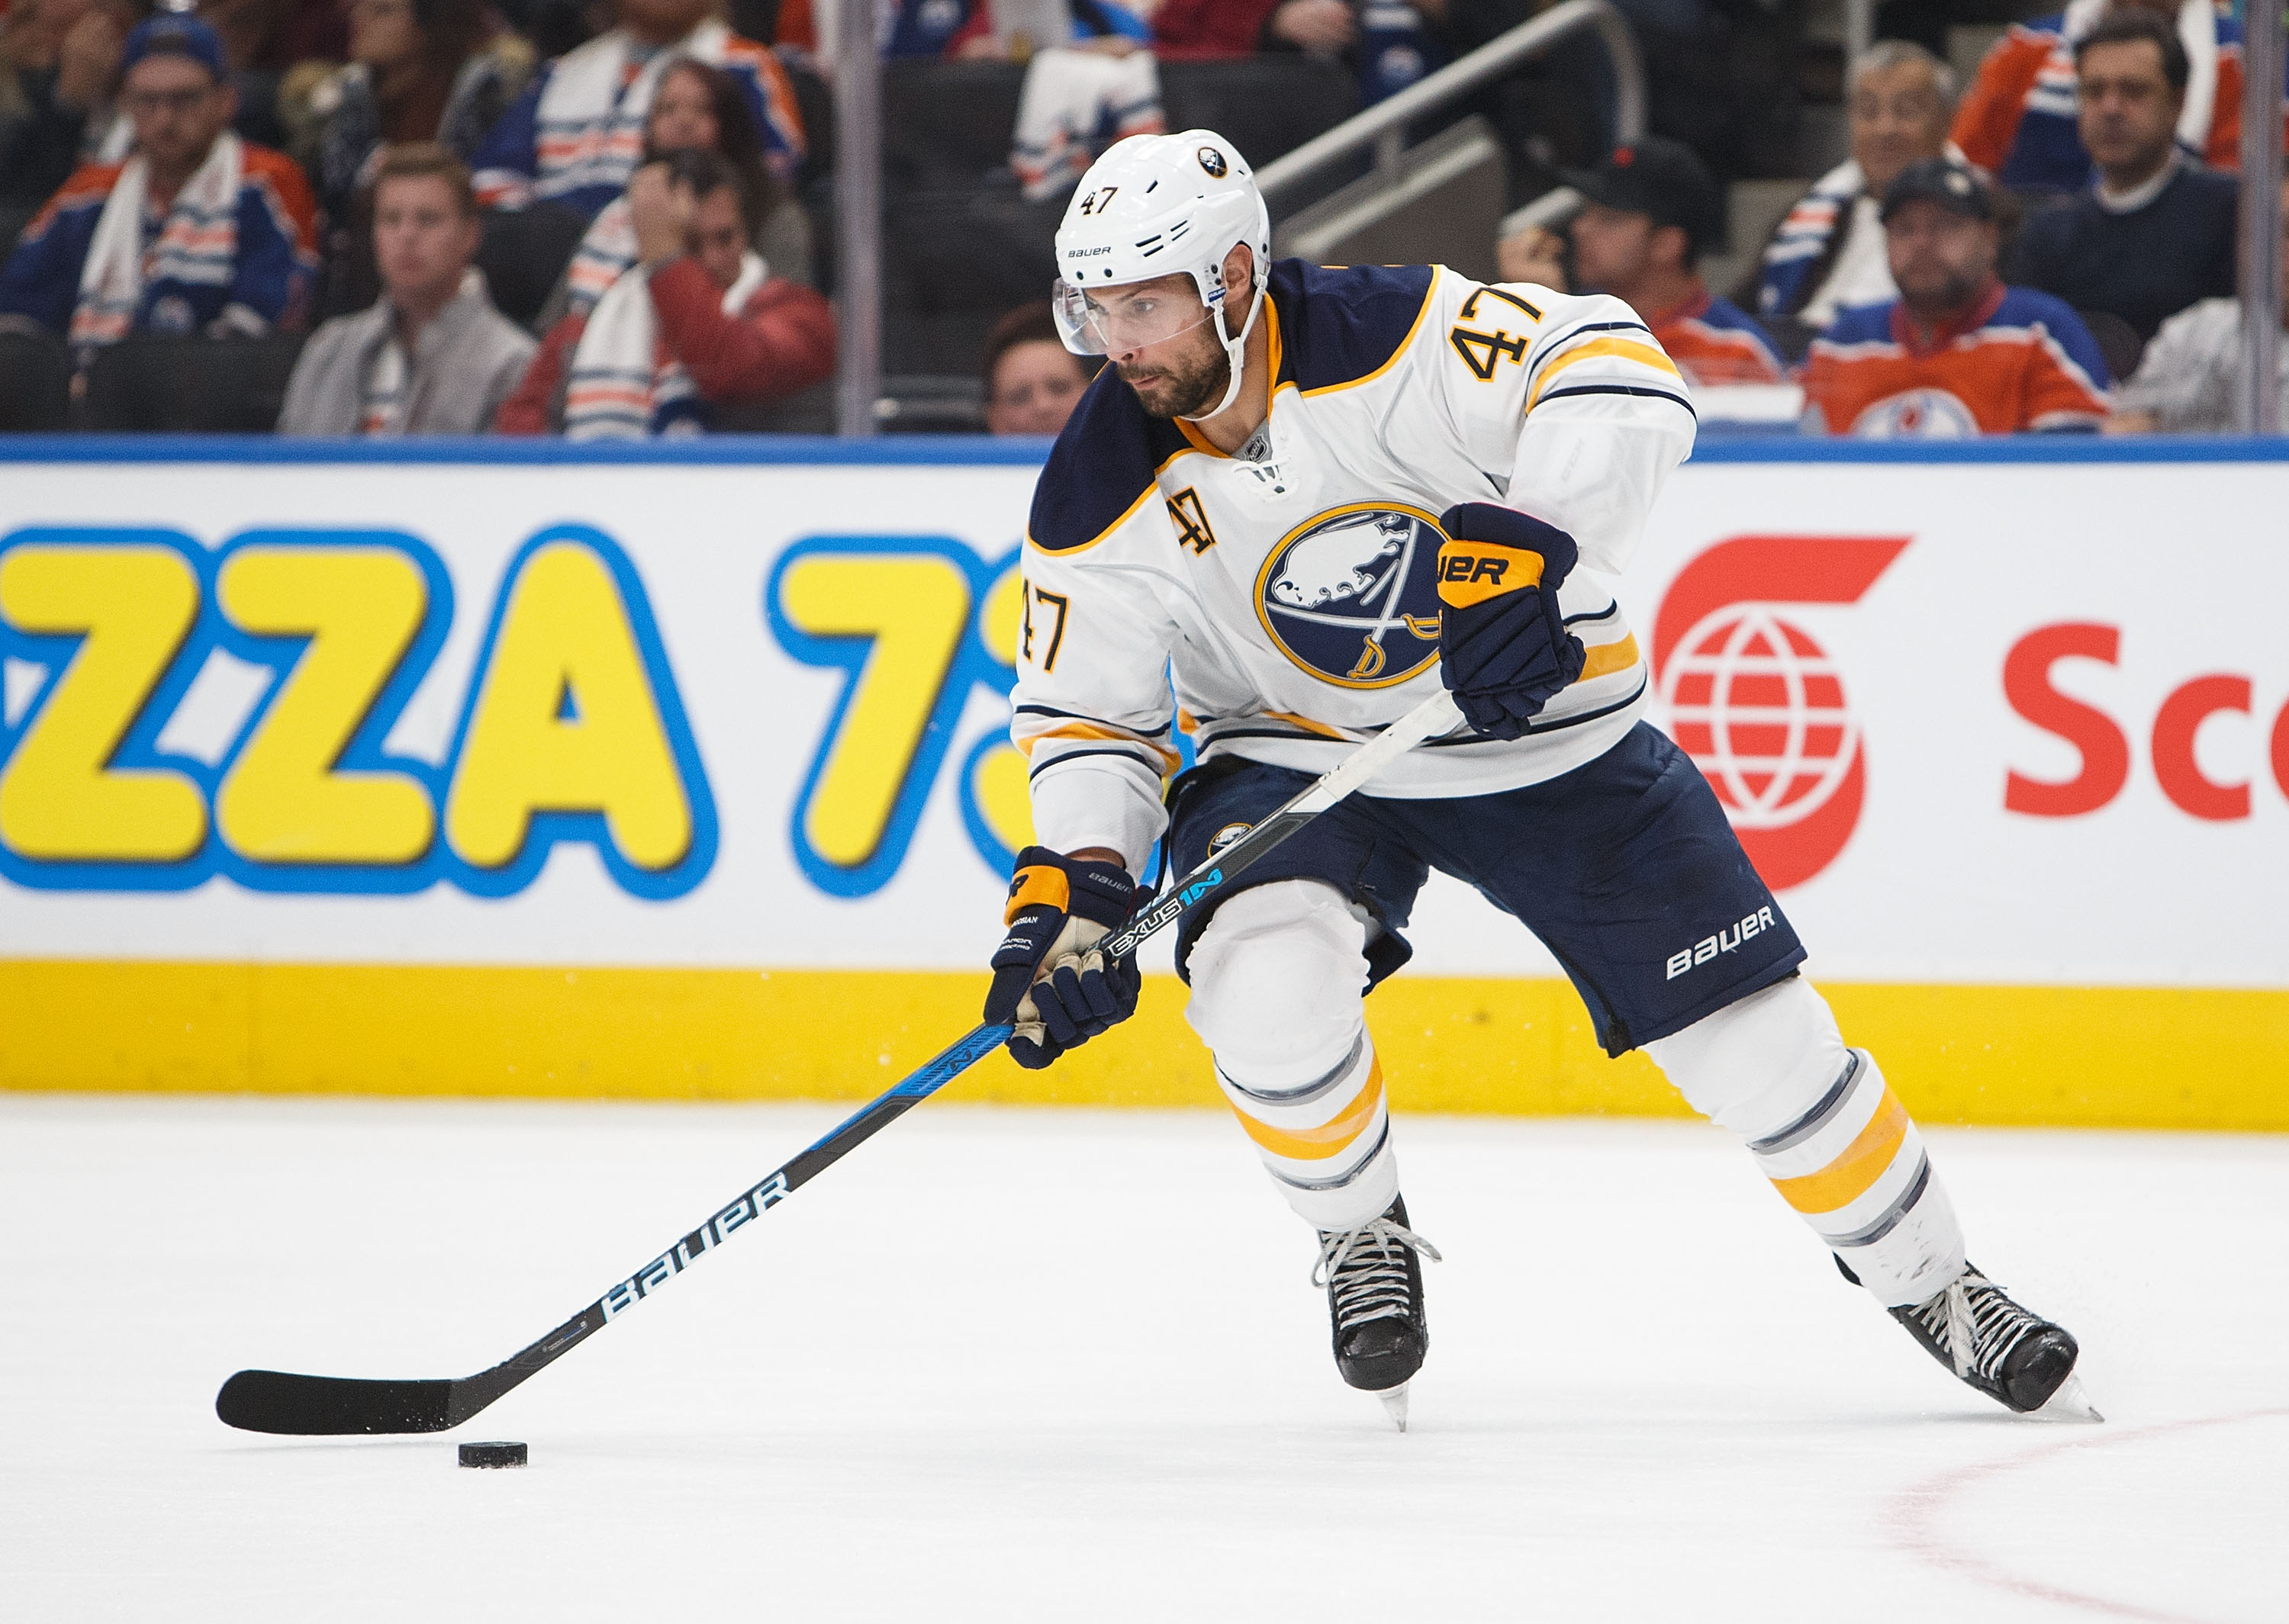 Sabres defenseman Zach Bogosian has missed five games with a rib injury. (Getty Images)